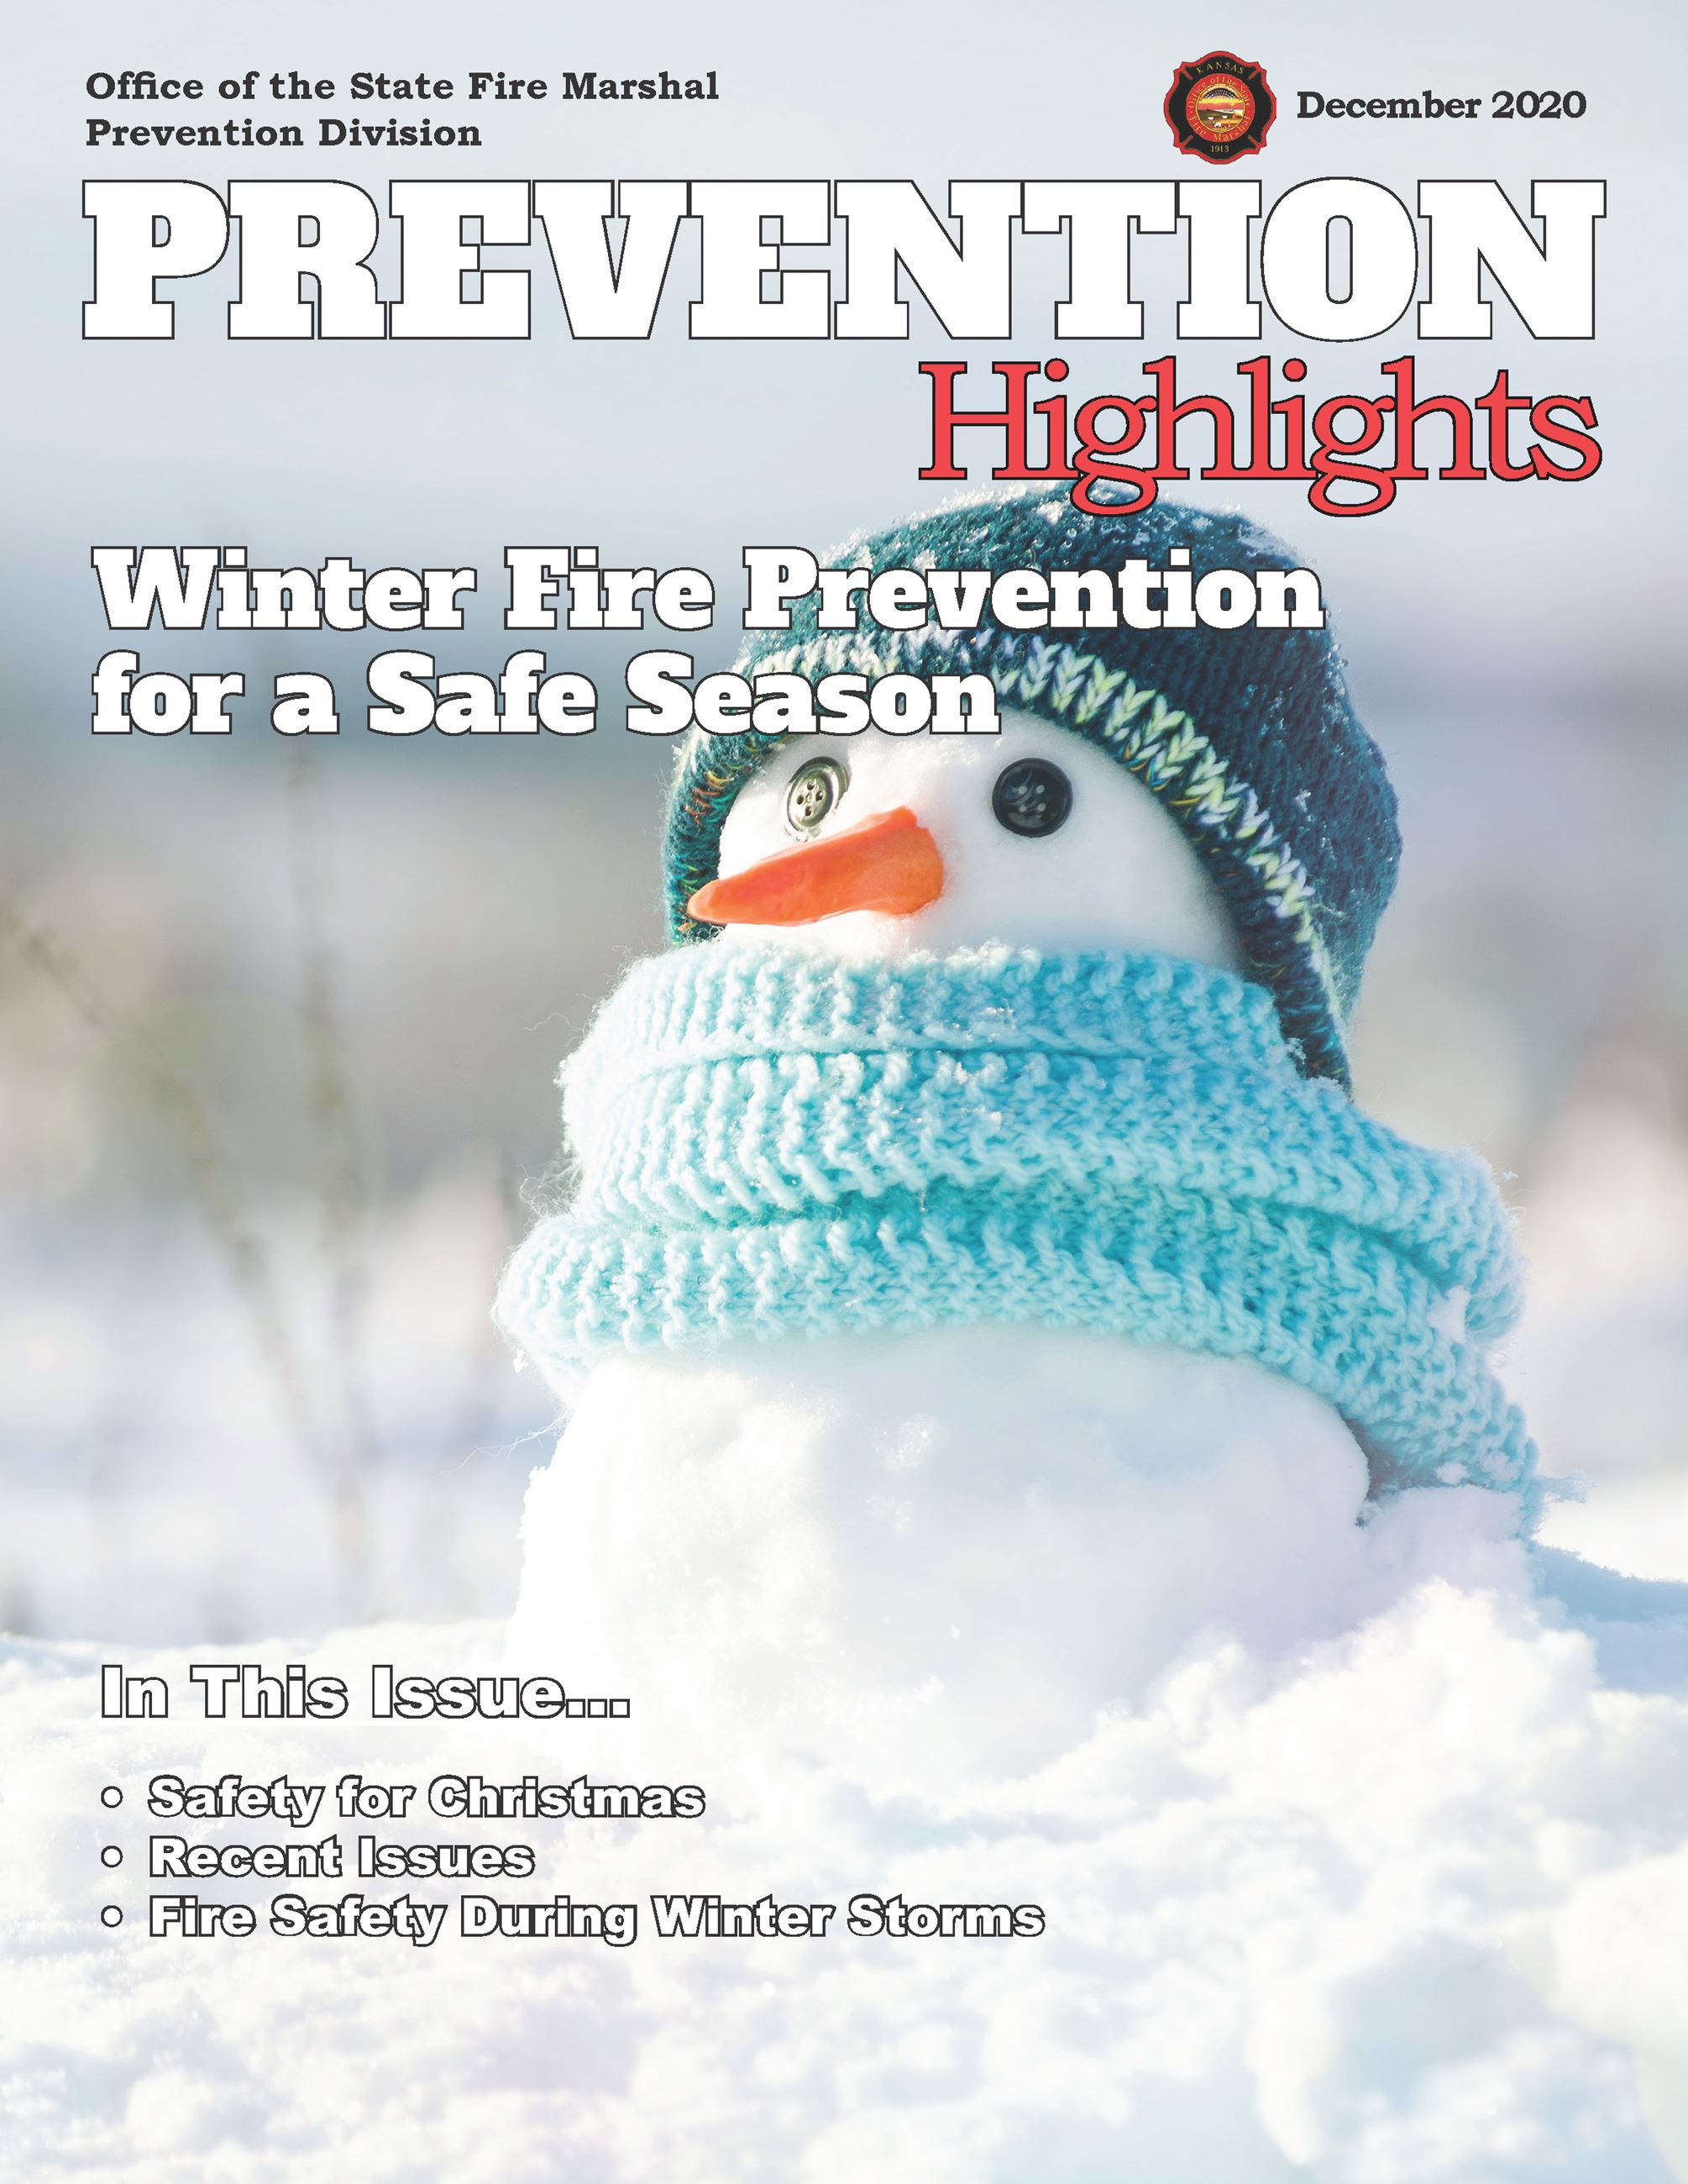 Prevention Cover - December 2020 Opens in new window